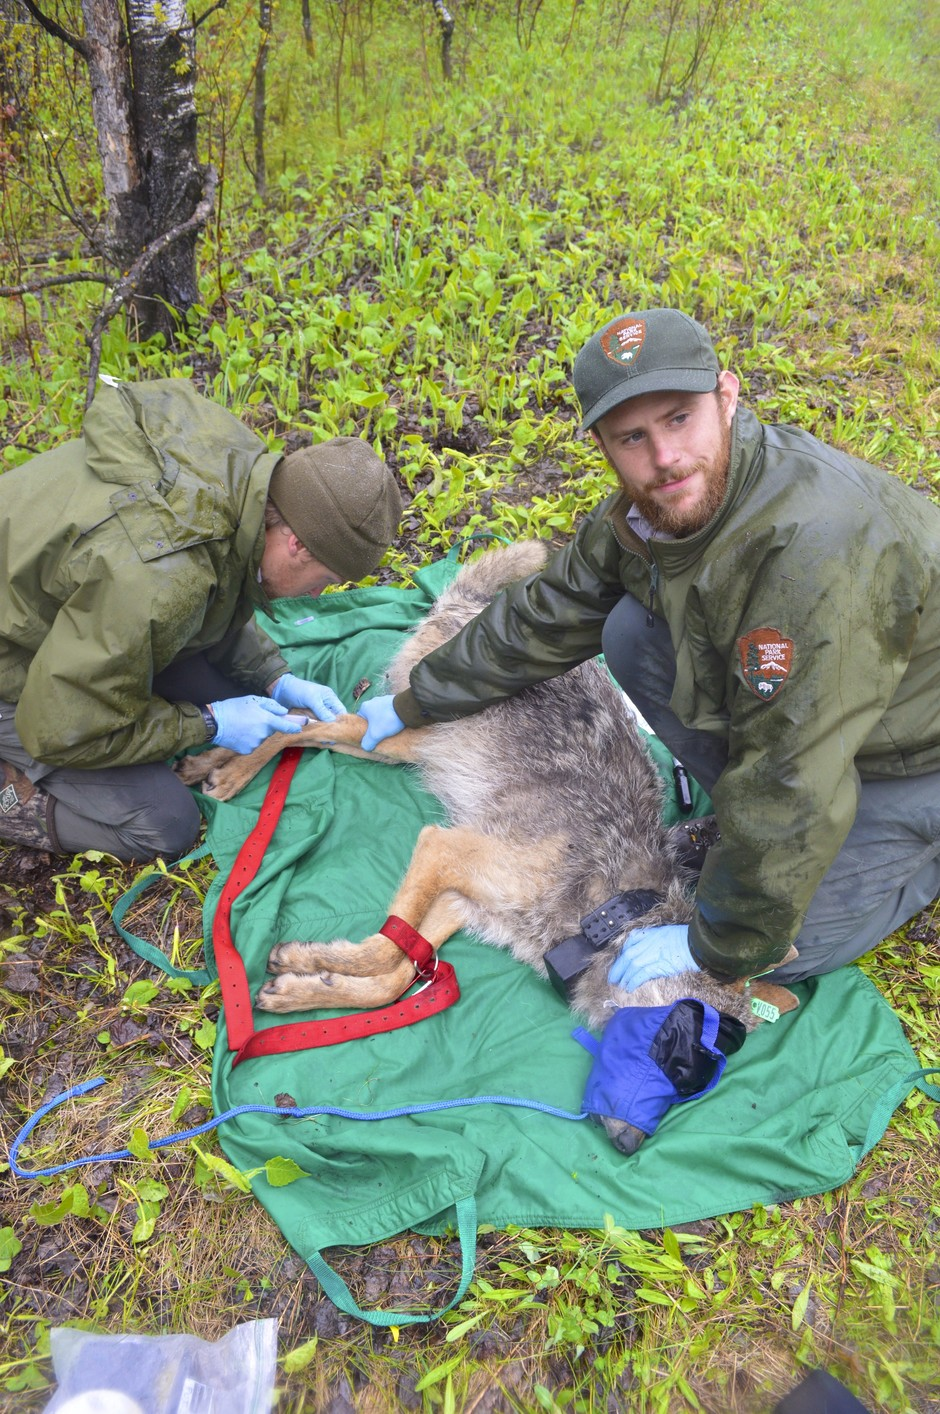 Collaring a wolf in Voyageurs National Park and also collecting biological samples. Austin Homkes, a graduate student, is collecting a blood sample while I (Tom Gable) hold the leg to make the vein in the leg more obvious and easier to get a blood sample.